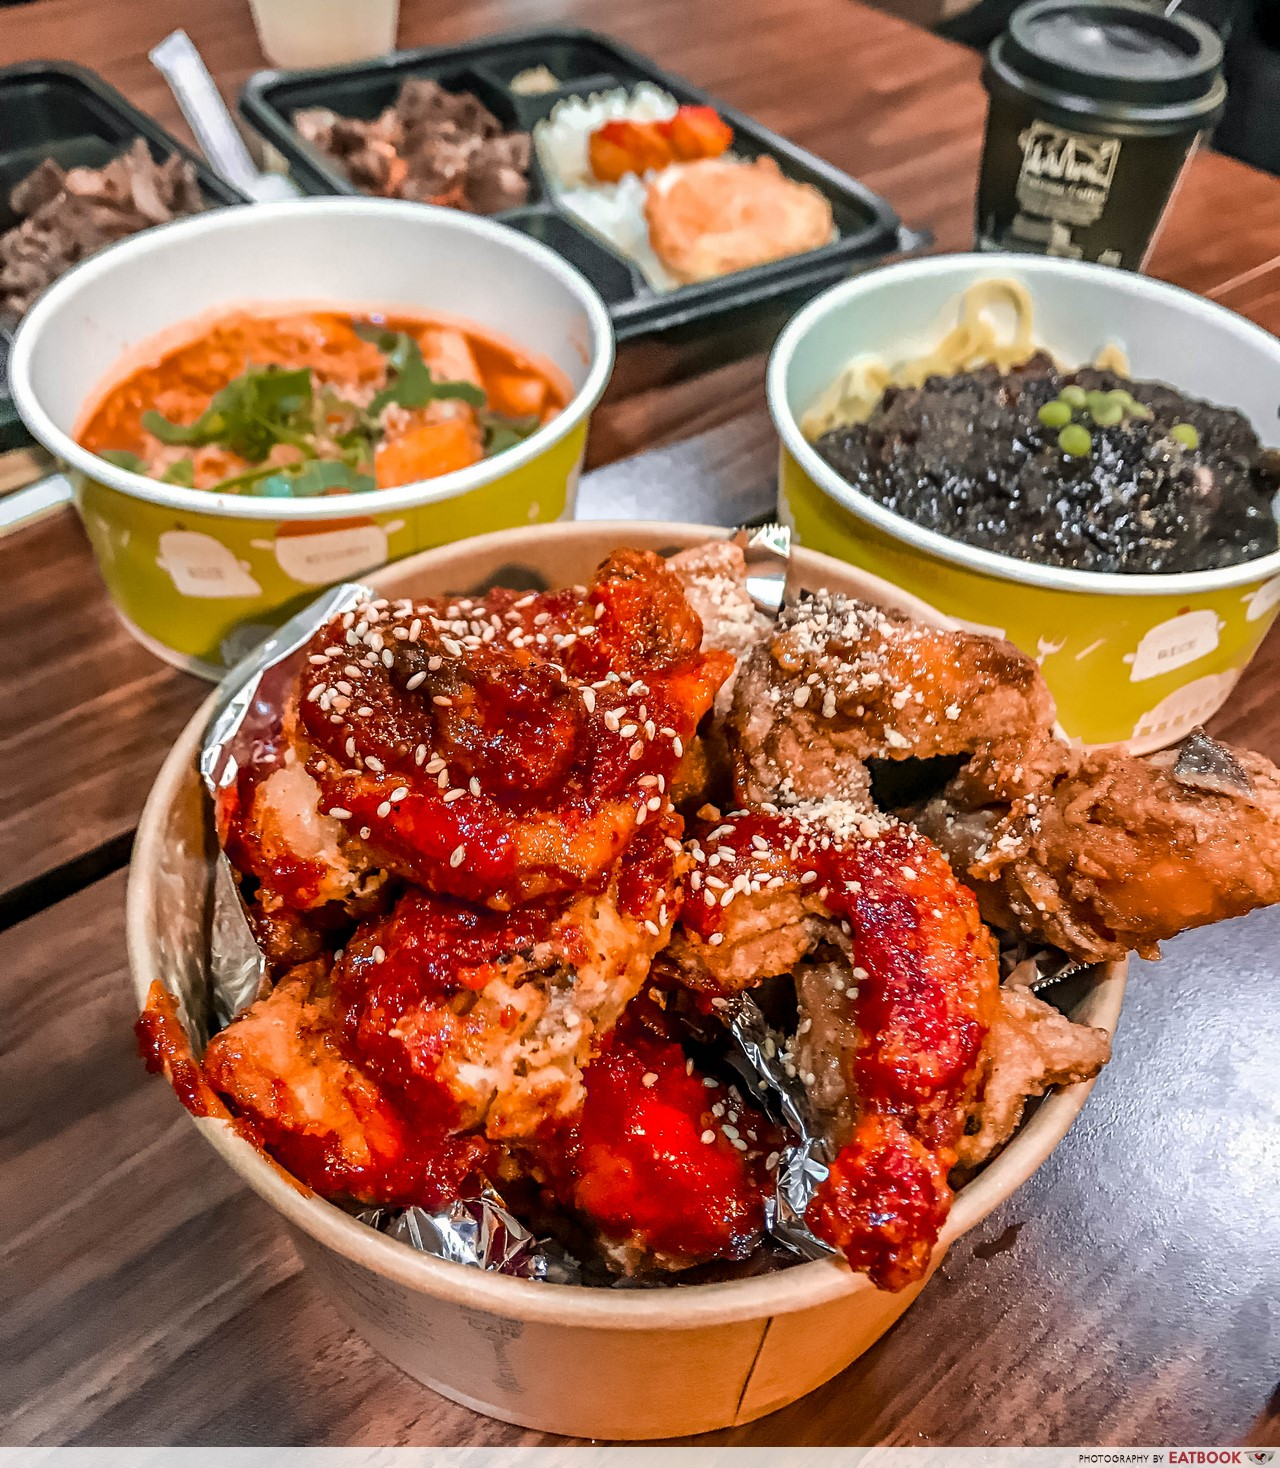 8 Halal Food Places In Seoul For Meat And Tteokbokki Feasts